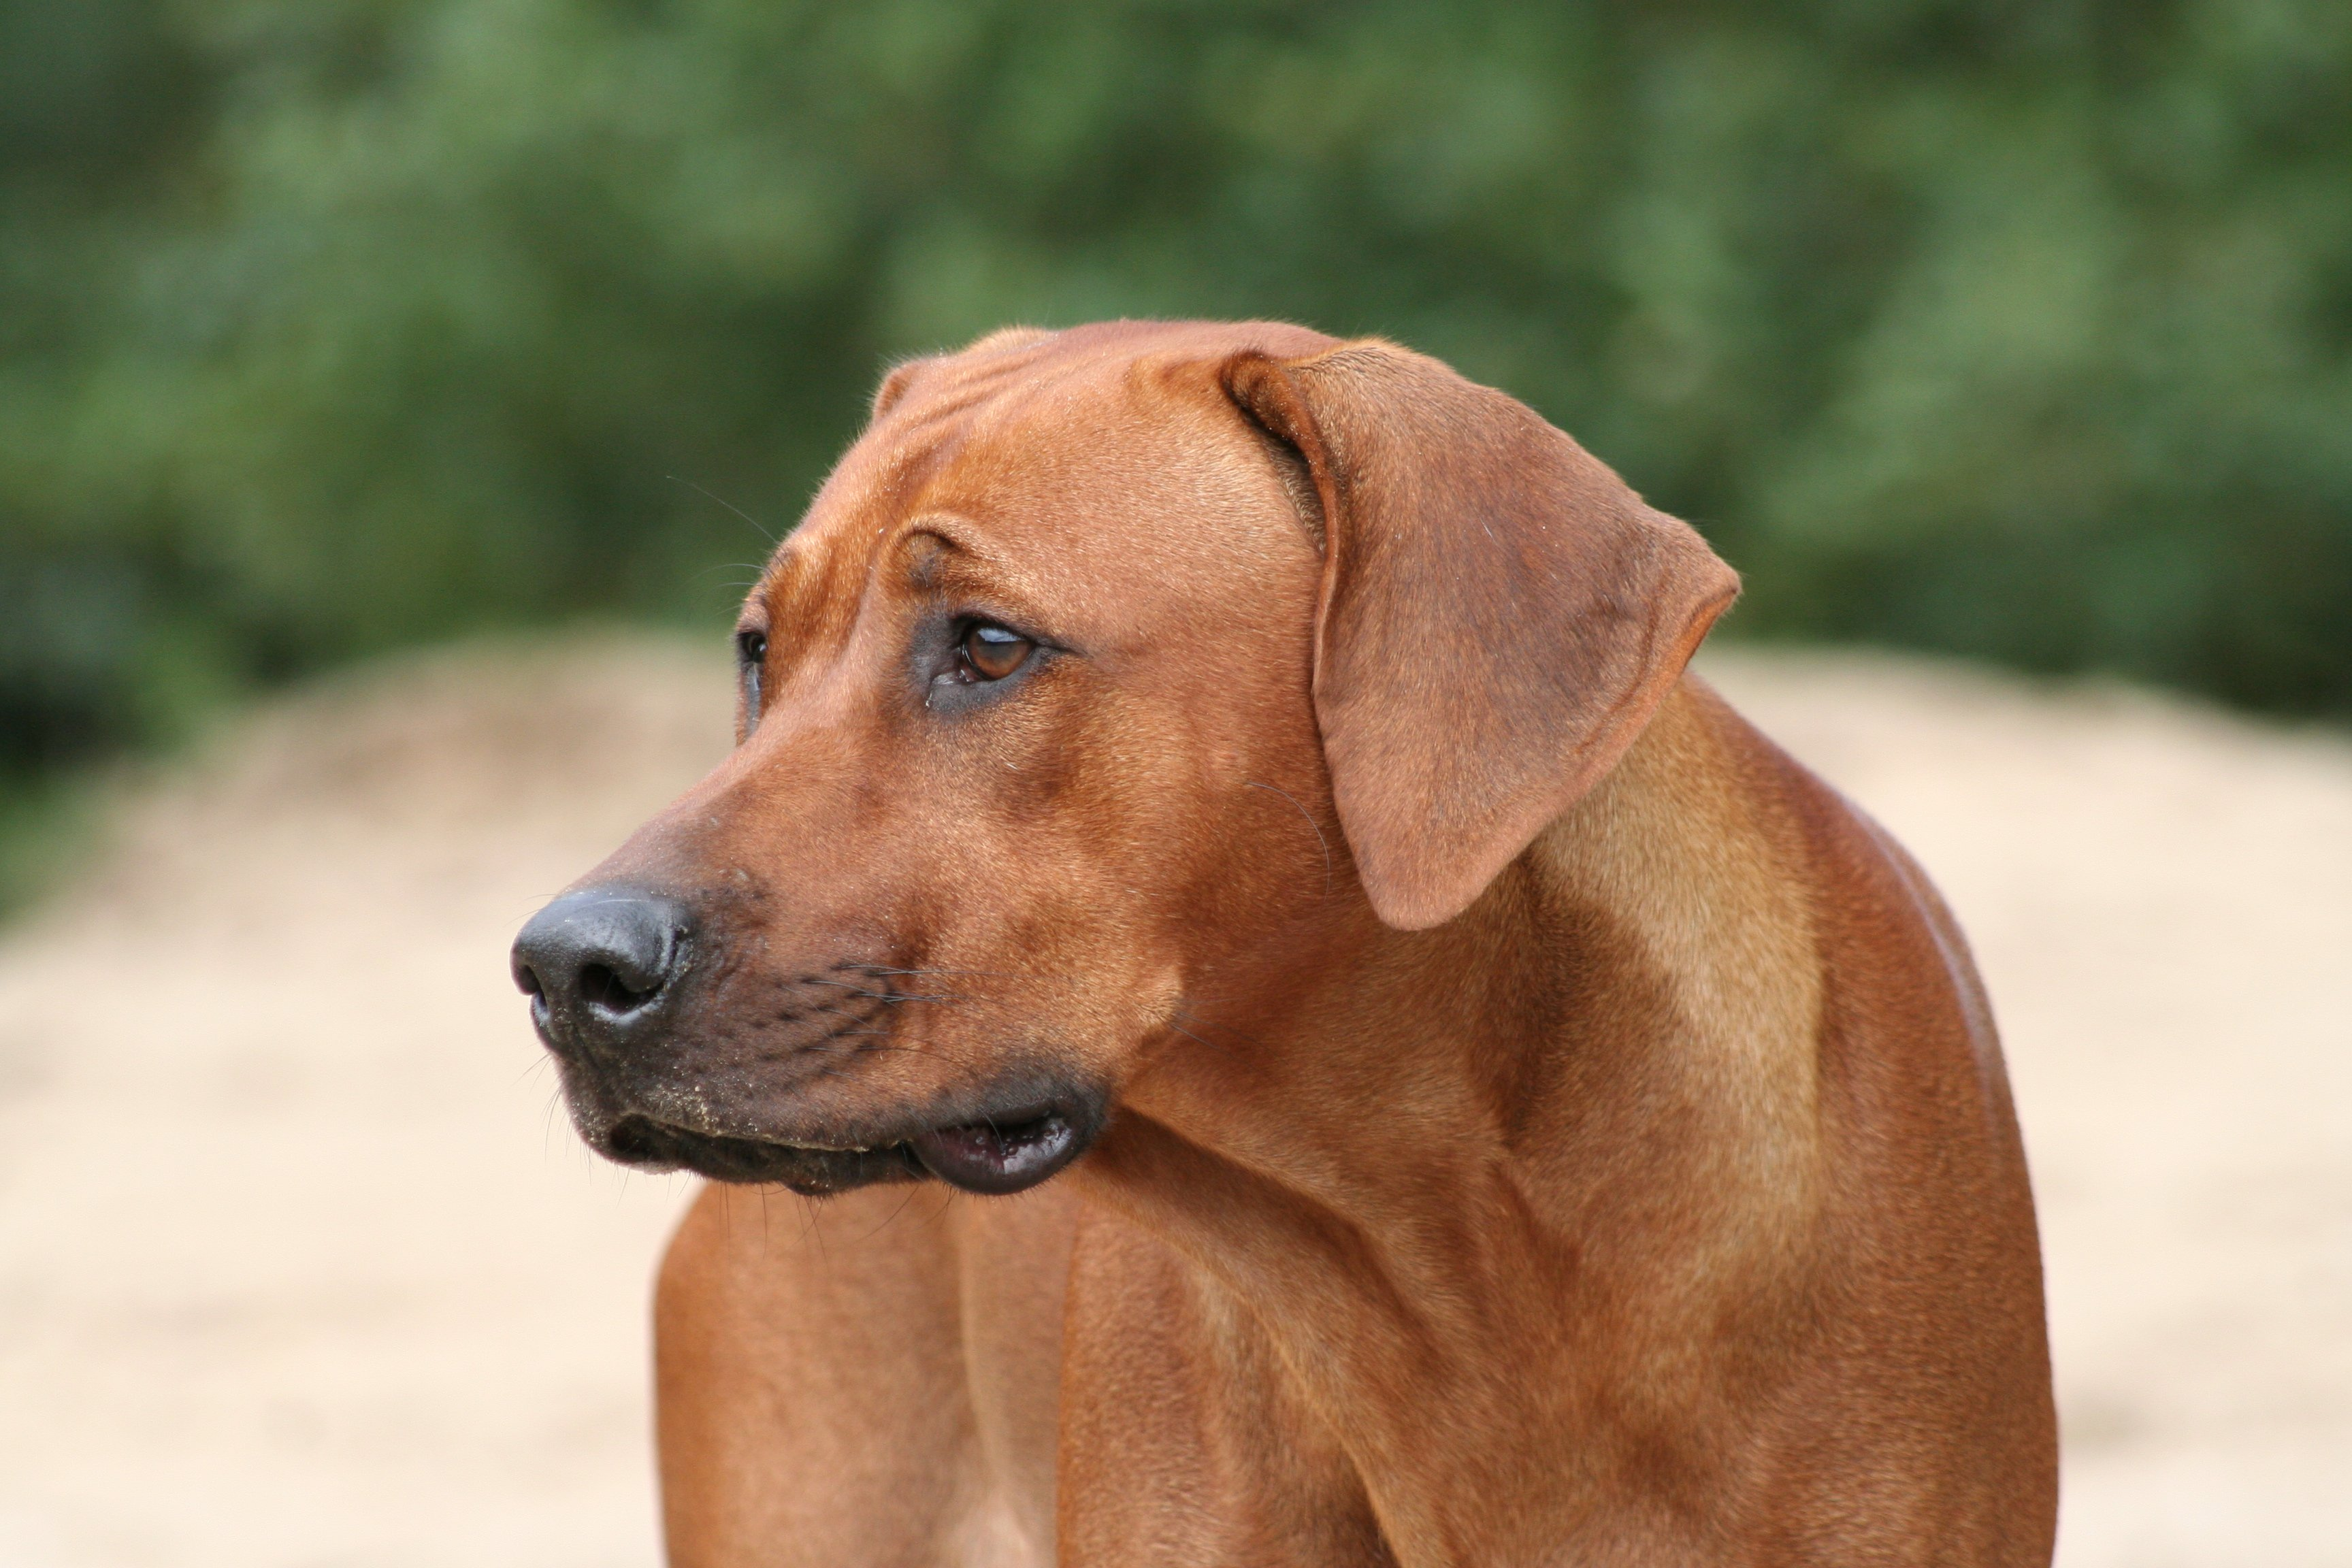 Lovely Rhodesian Ridgeback dog  wallpaper